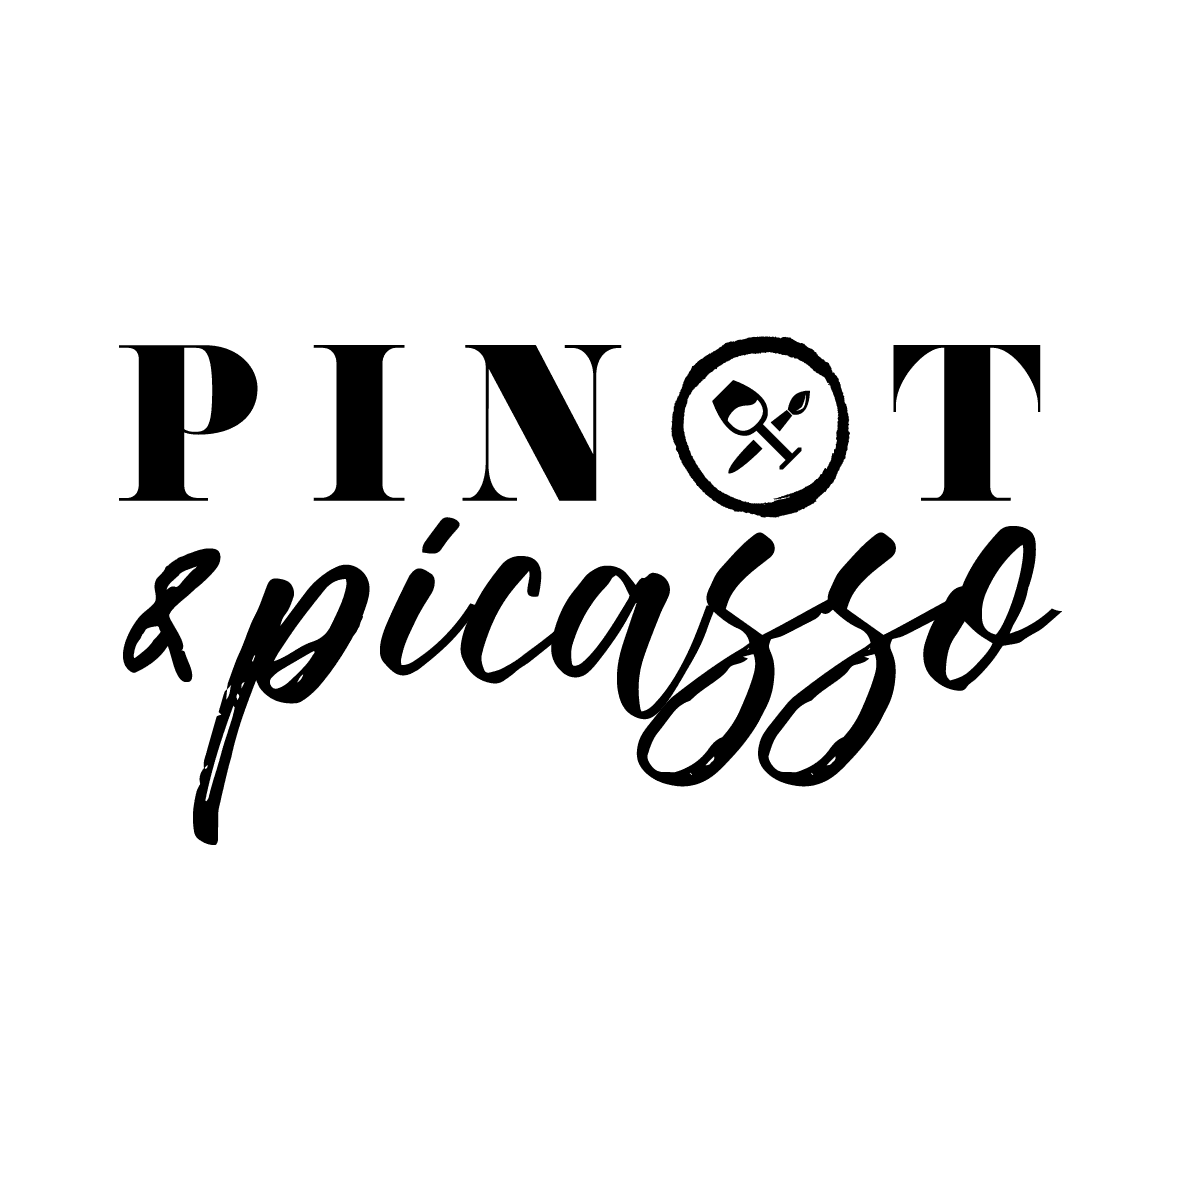 Pinot&picasso-black